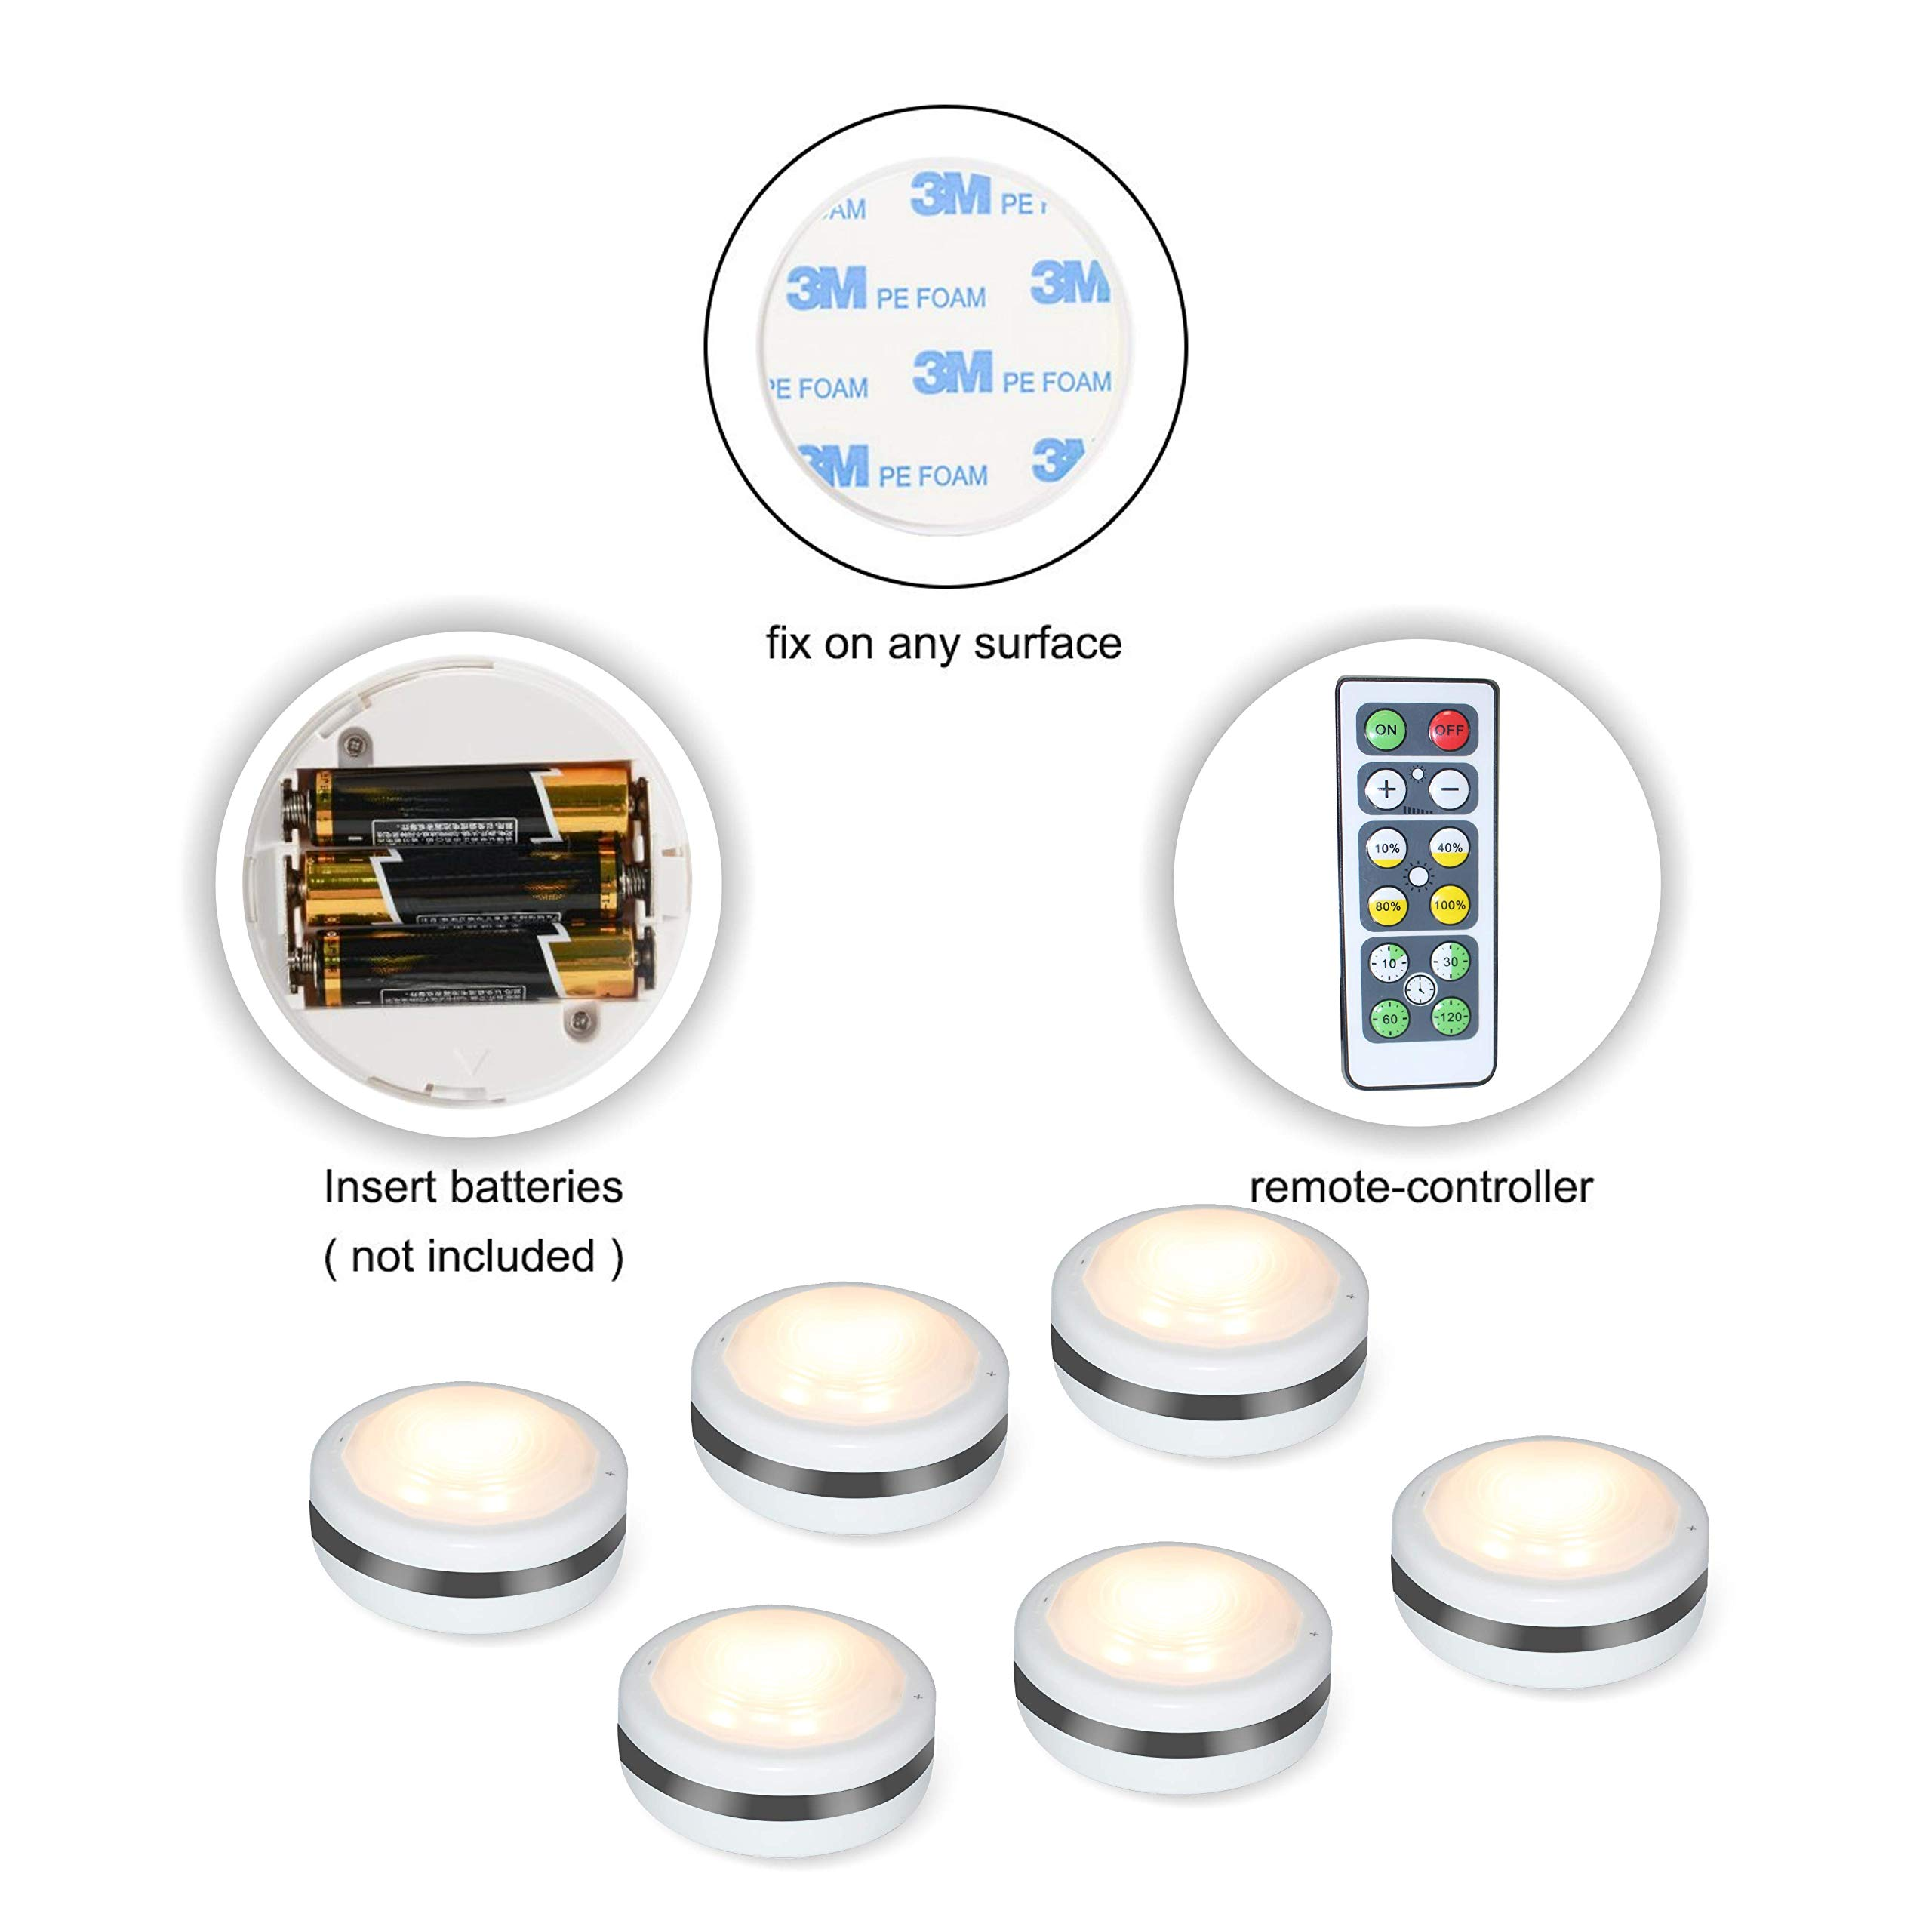 Puck Lights With Remote, Starxing Wireless Led Puck Lights Battery Operated, Led Puck Lights With Remote Control, Led Under Cabinet Lighting, Dimmable Closet Light, Battery Powered, 4000K Natural Whit by Starxing (Image #3)